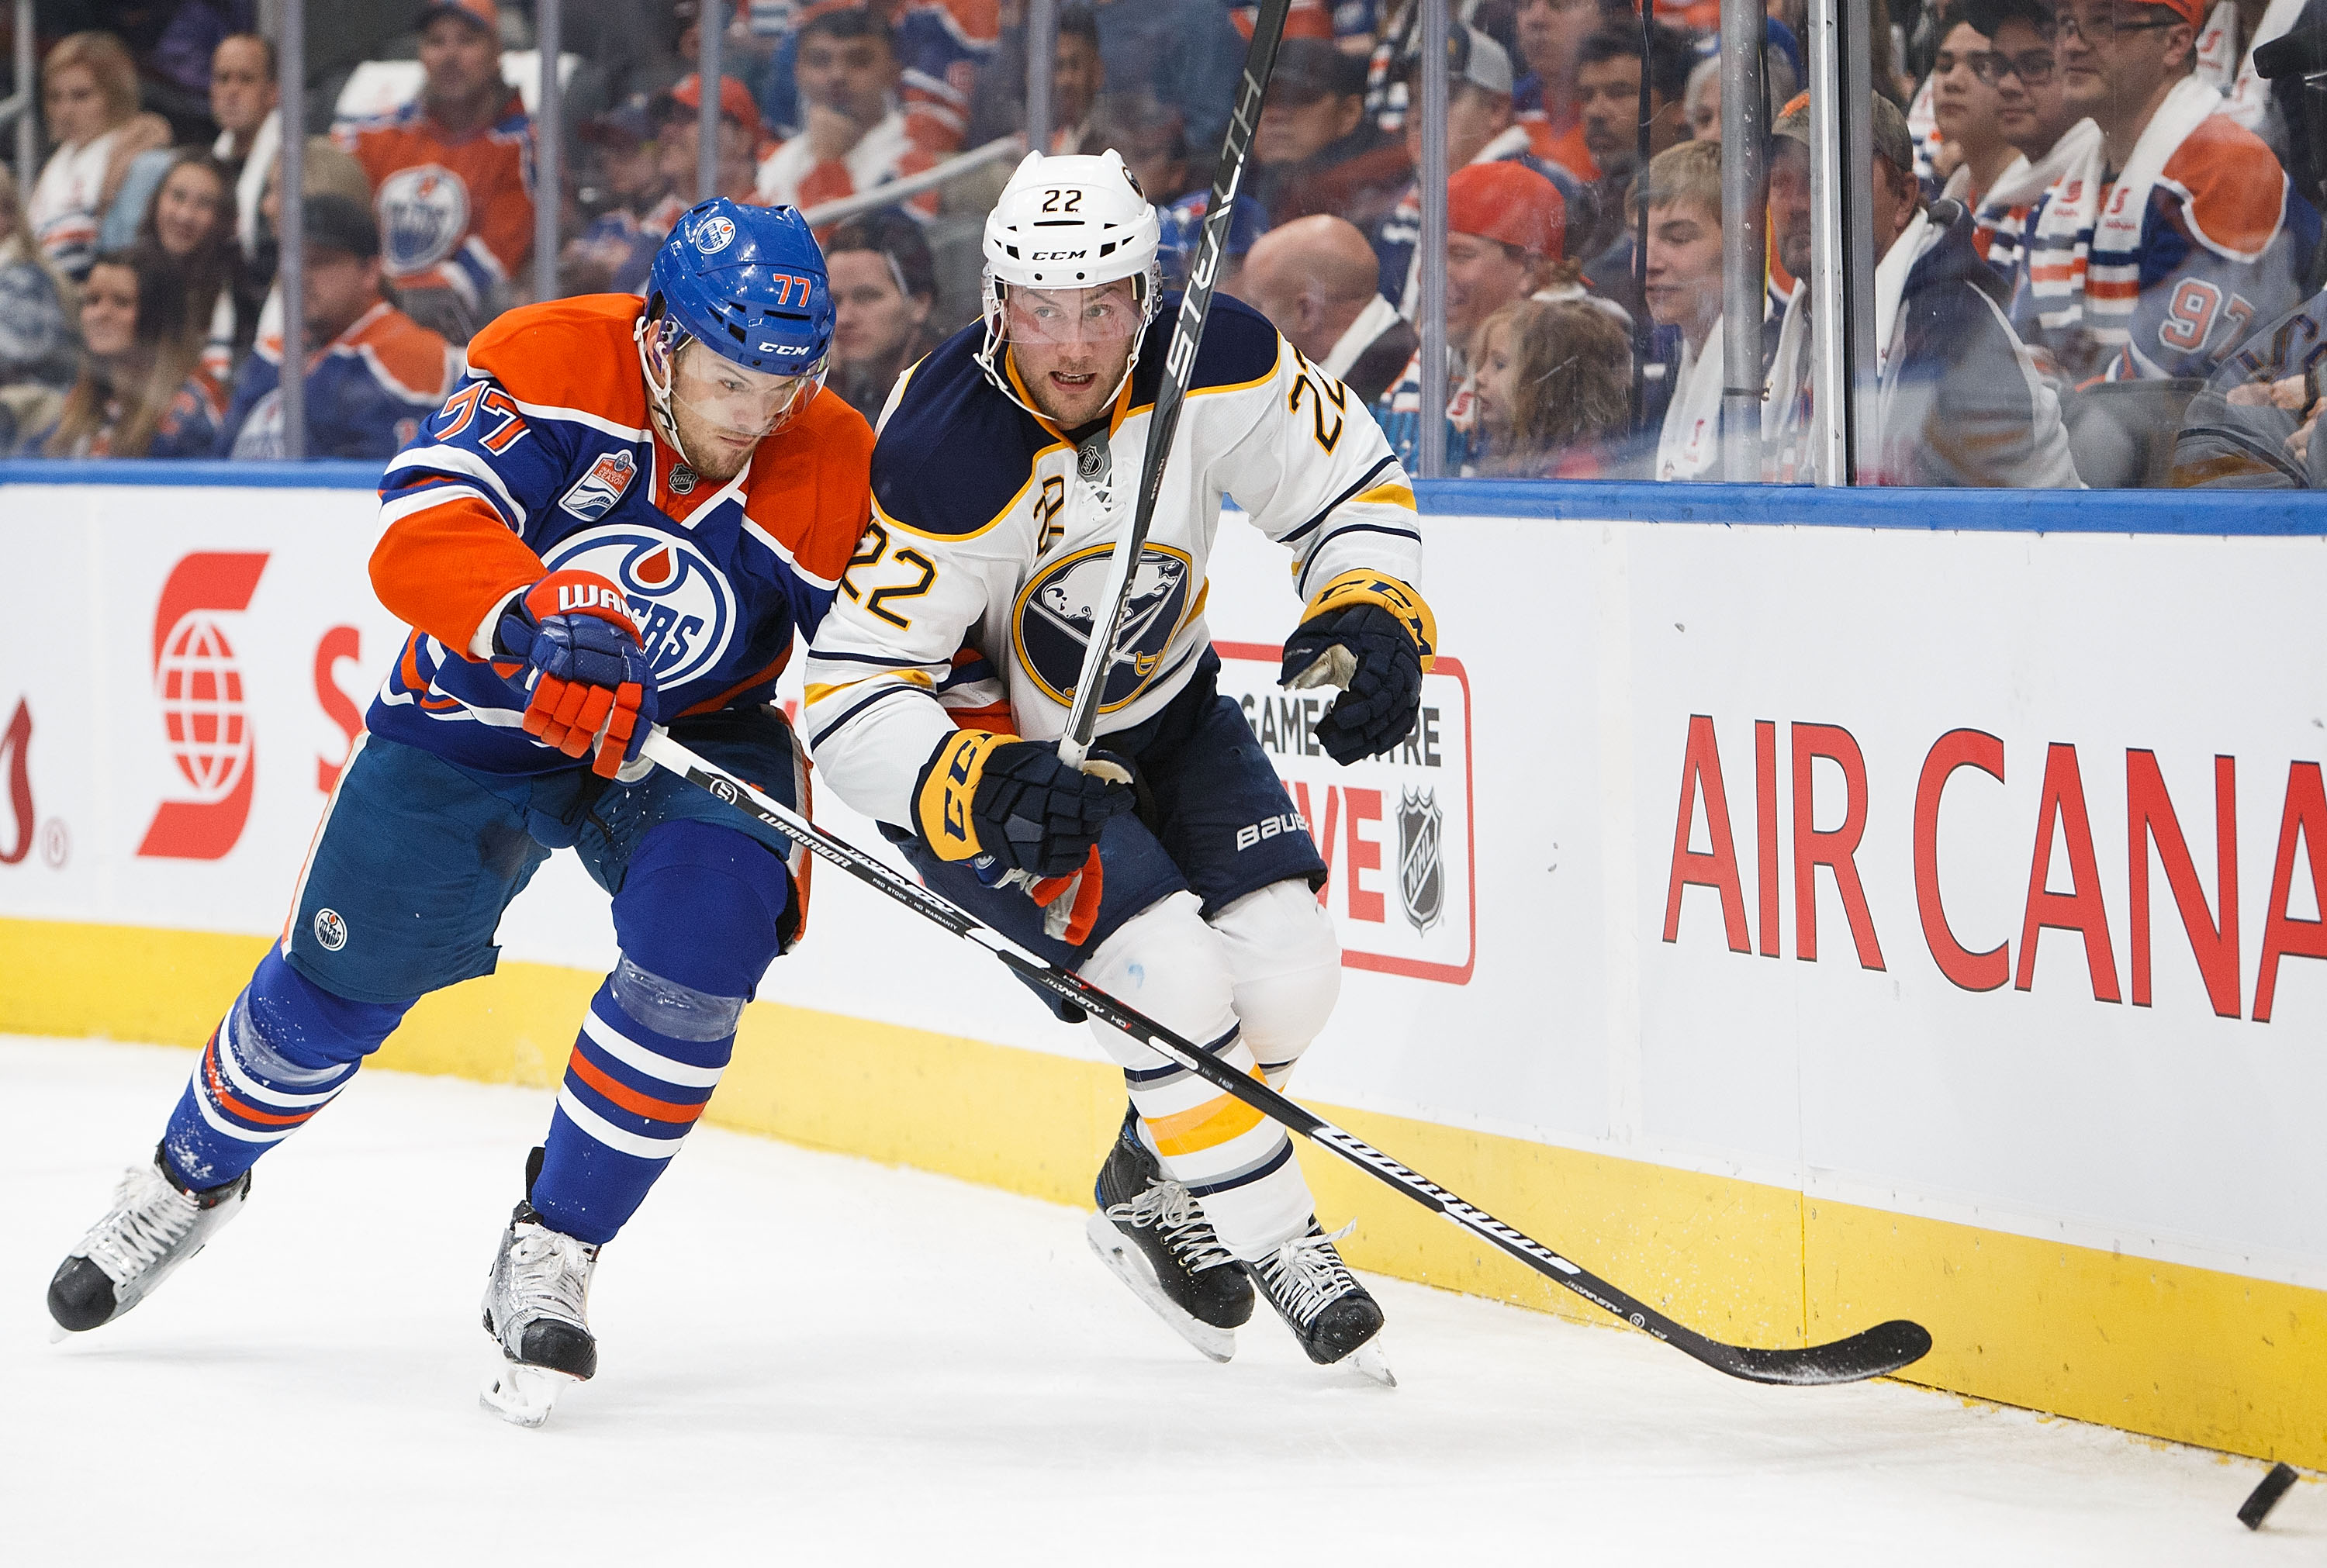 Oscar Klefbom of the Edmonton Oilers battles Johan Larsson (22) of the Buffalo Sabres. (Getty Images)